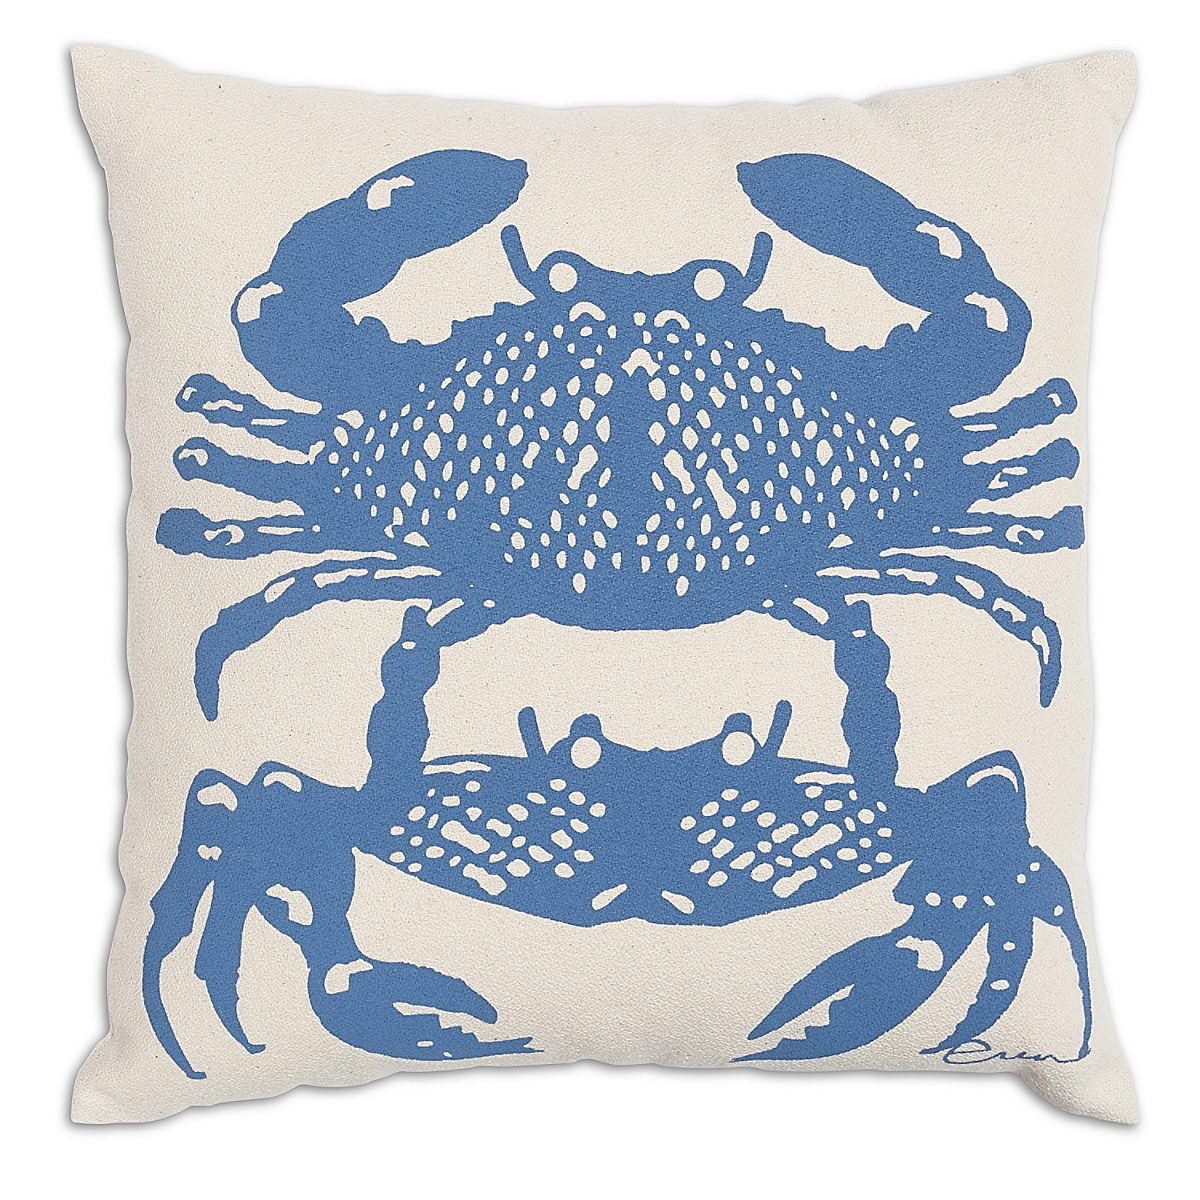 "20"" x 20"" - Crabbies Pillow: French Blue"